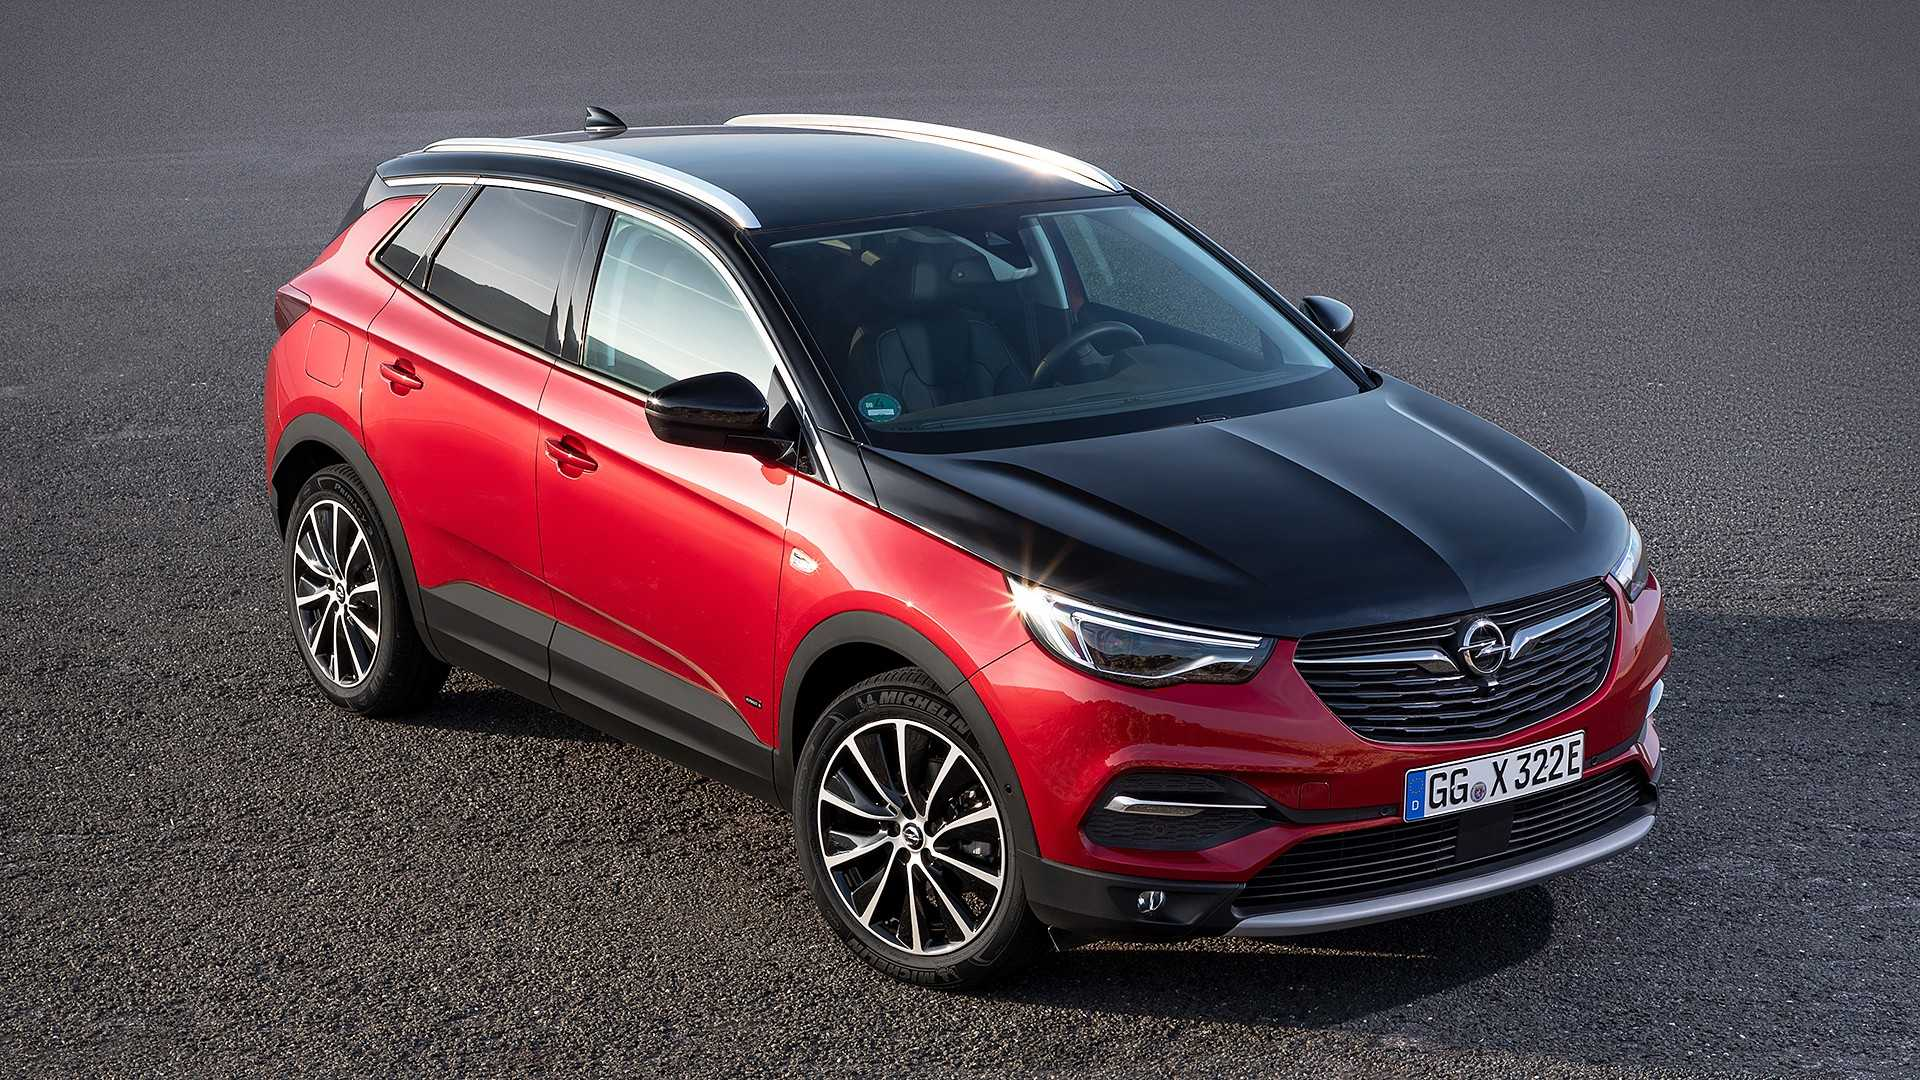 81 The Opel Grandland X Facelift 2020 Picture